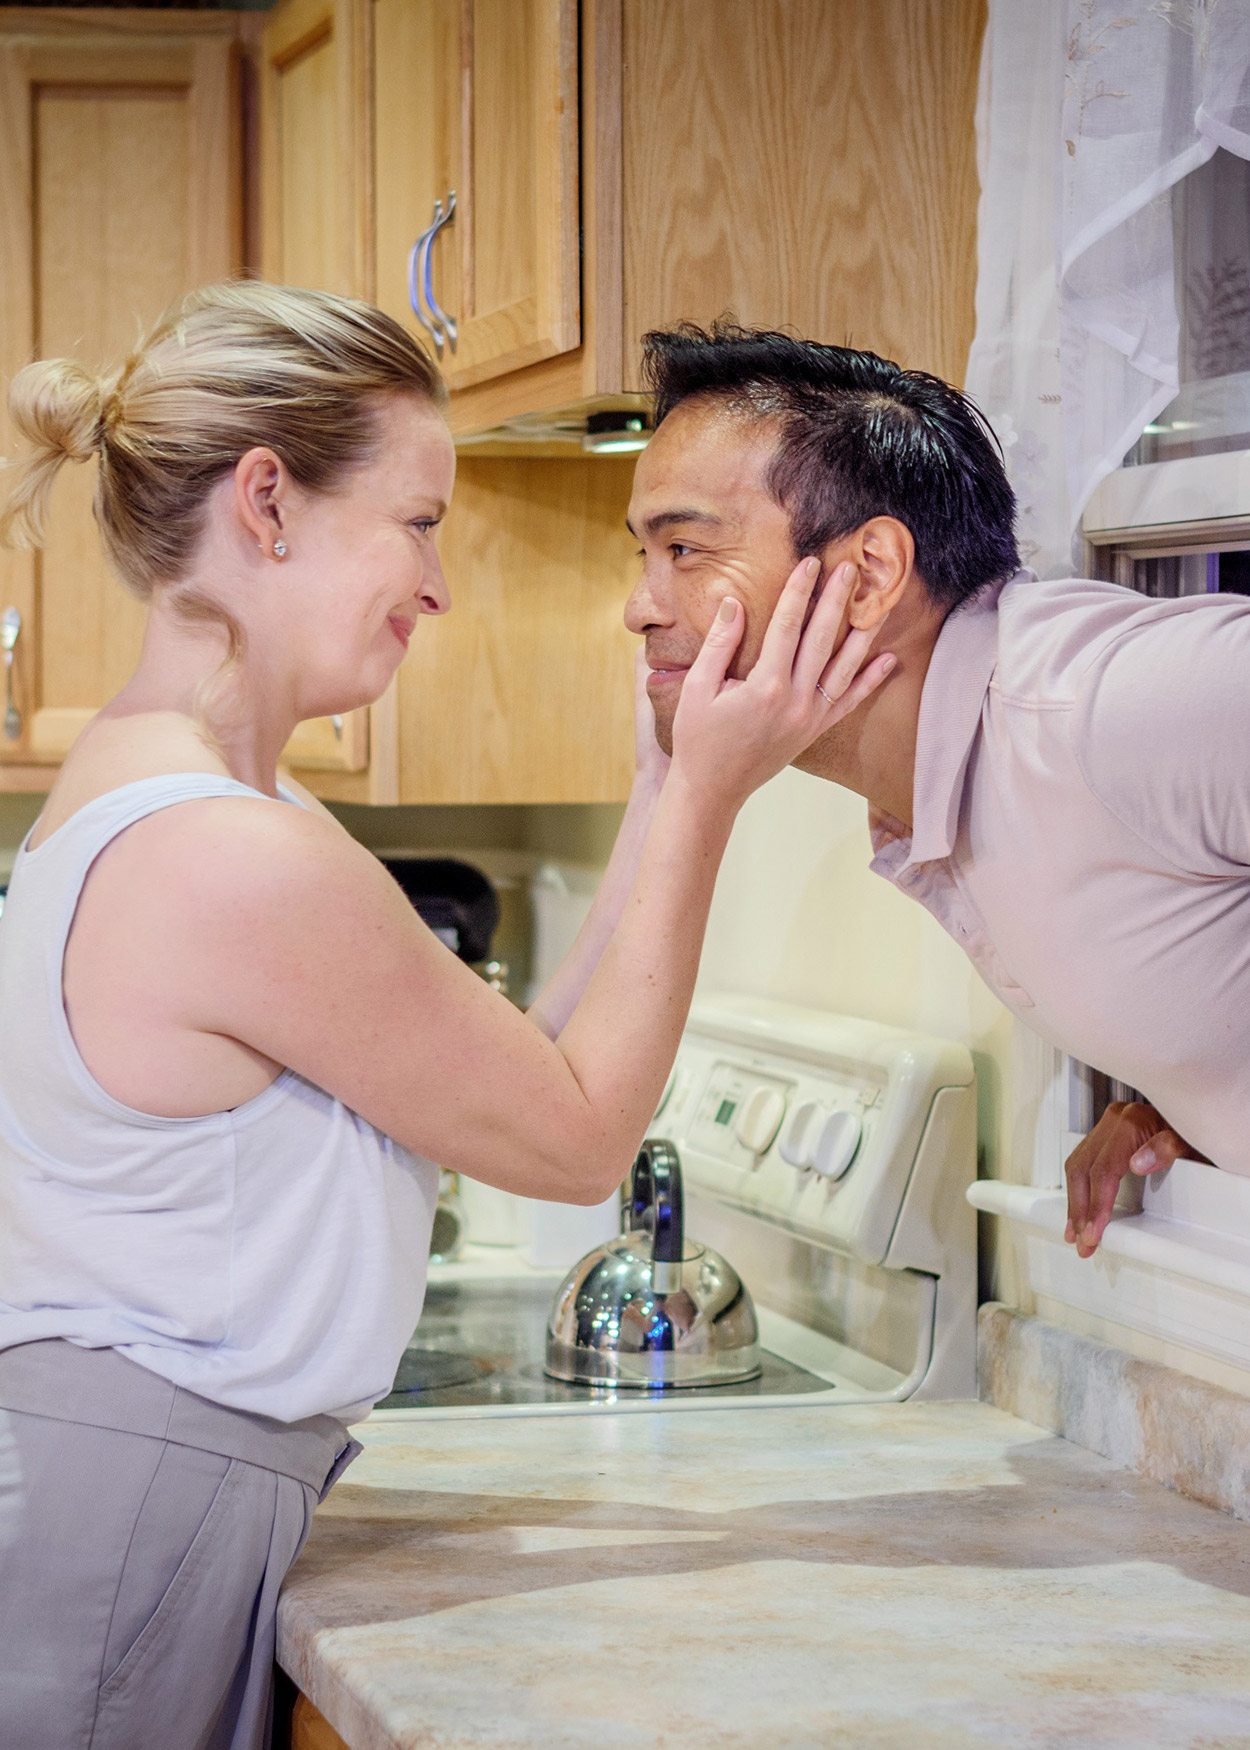 Production Photo from Foster Mom (2017). A woman stands in a kitchen and embraces the face of an man who is looking into the kitchen from a window over the sink.